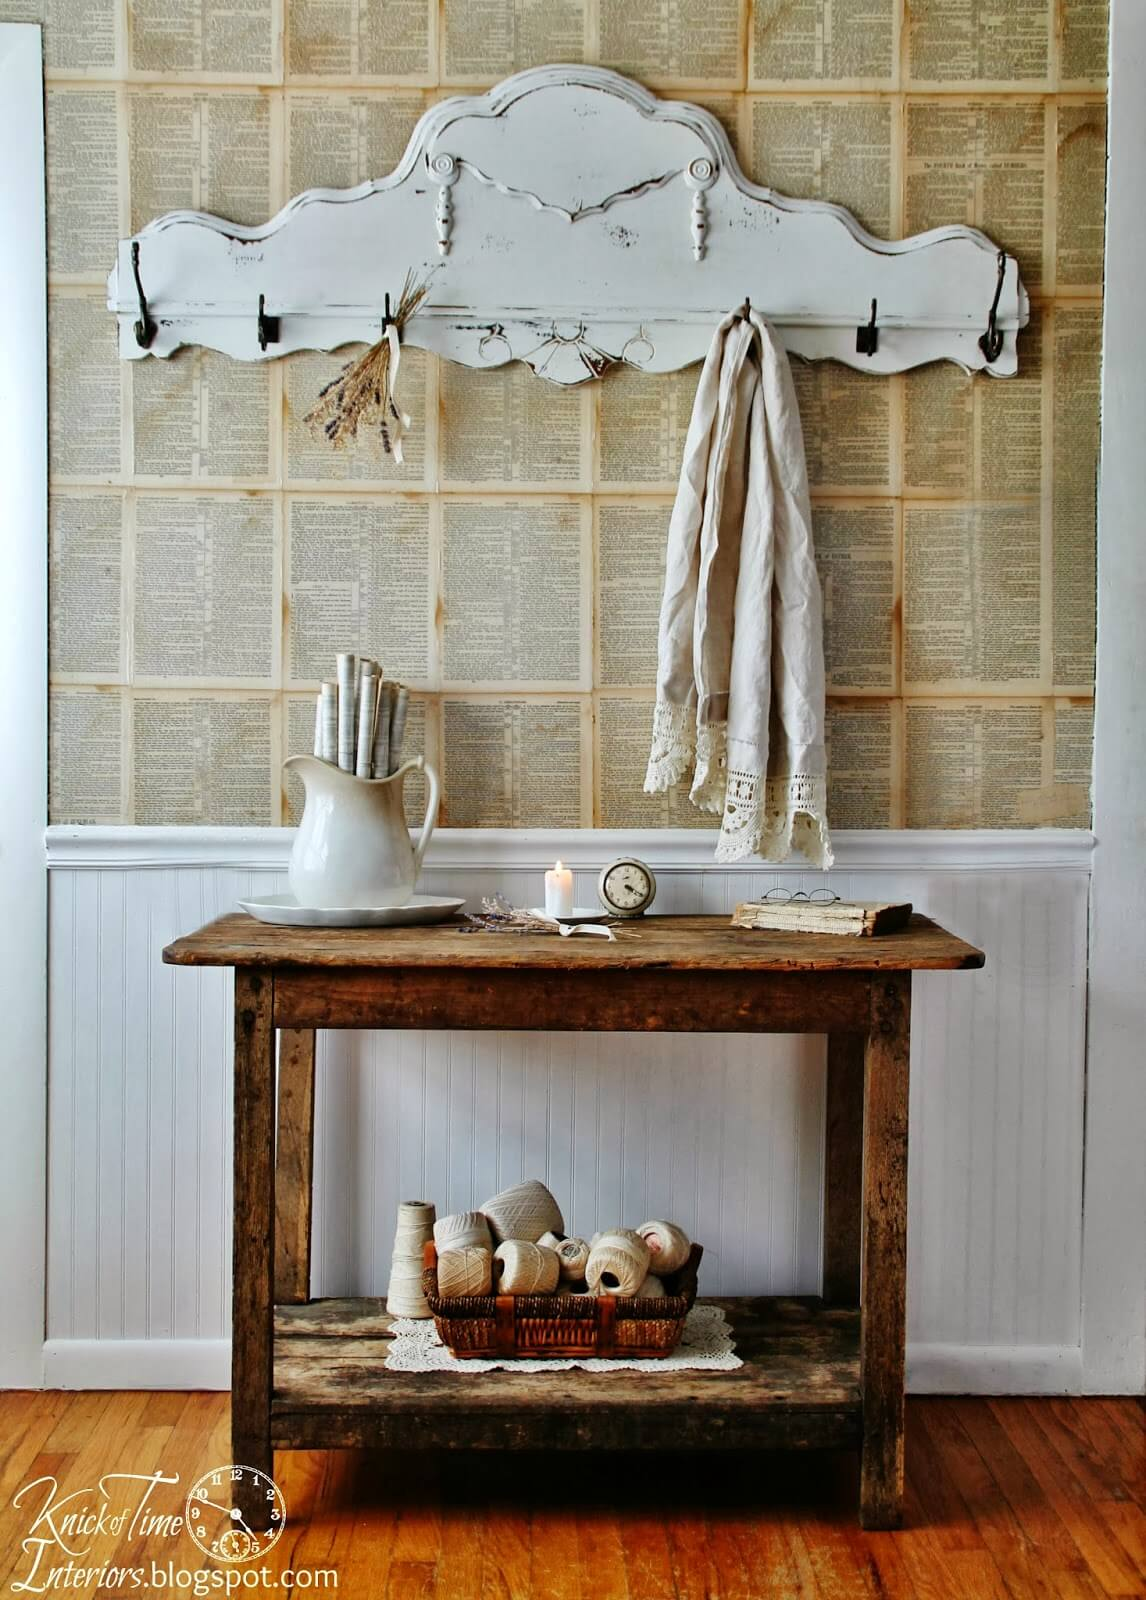 Antique-Style Entryway Coat Hanger